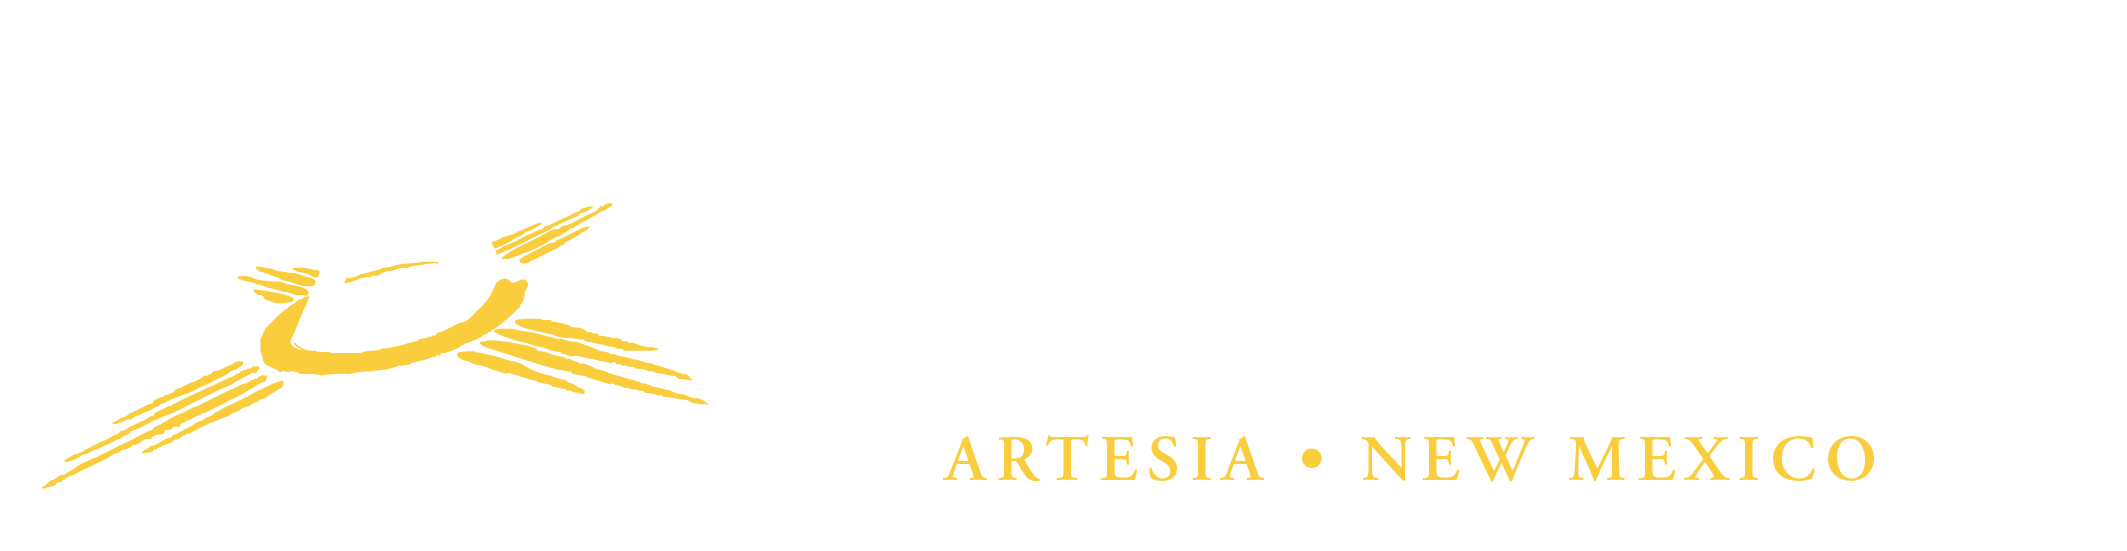 Artesia Chamber of Commerce